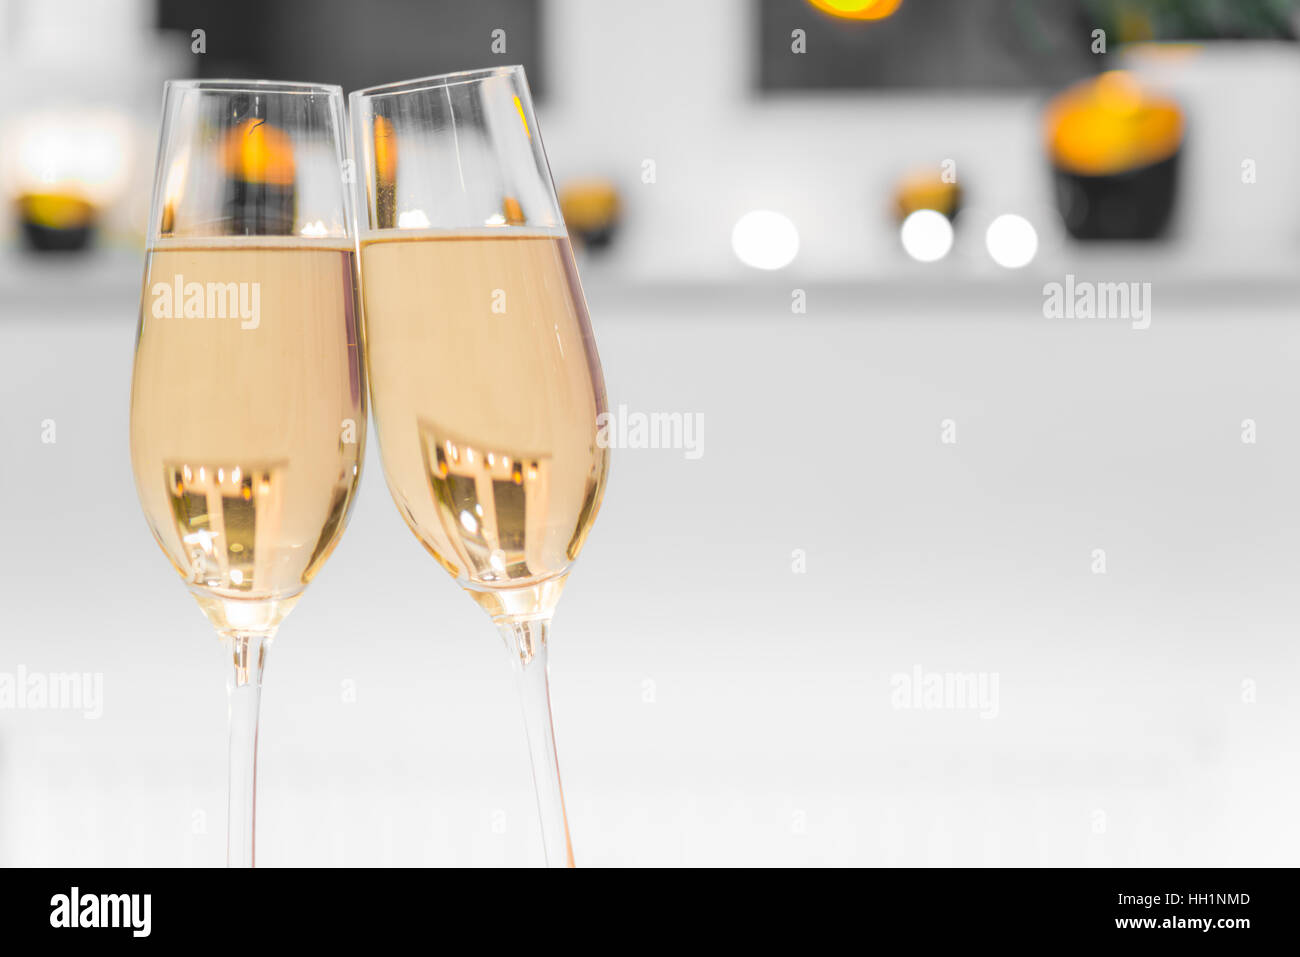 Closeup of two glasses filled with champagne - Stock Image